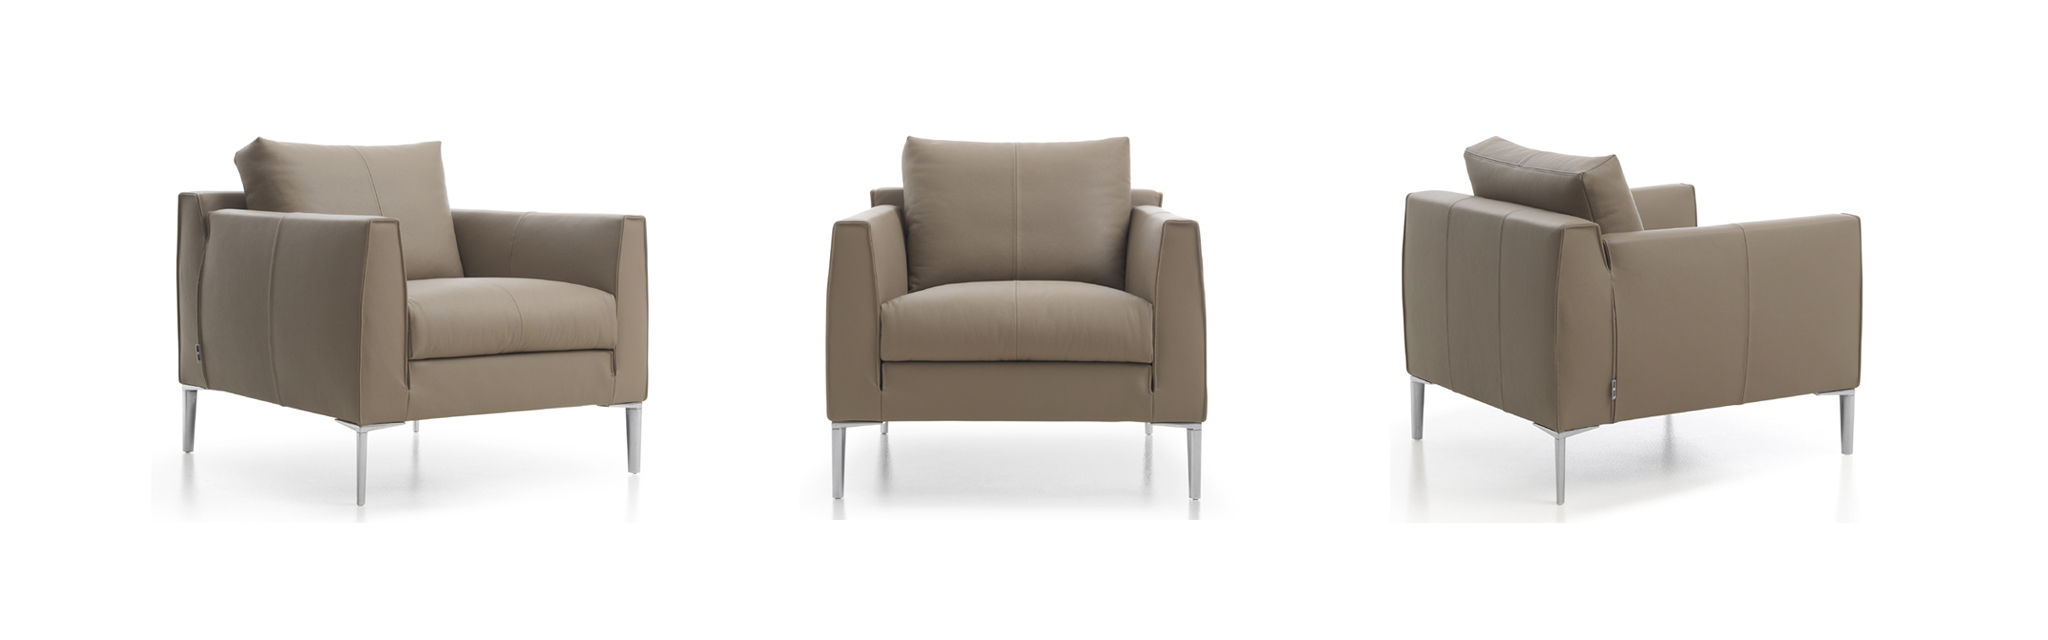 Design On Stock Bloq Fauteuil.Fauteuil Design On Stock